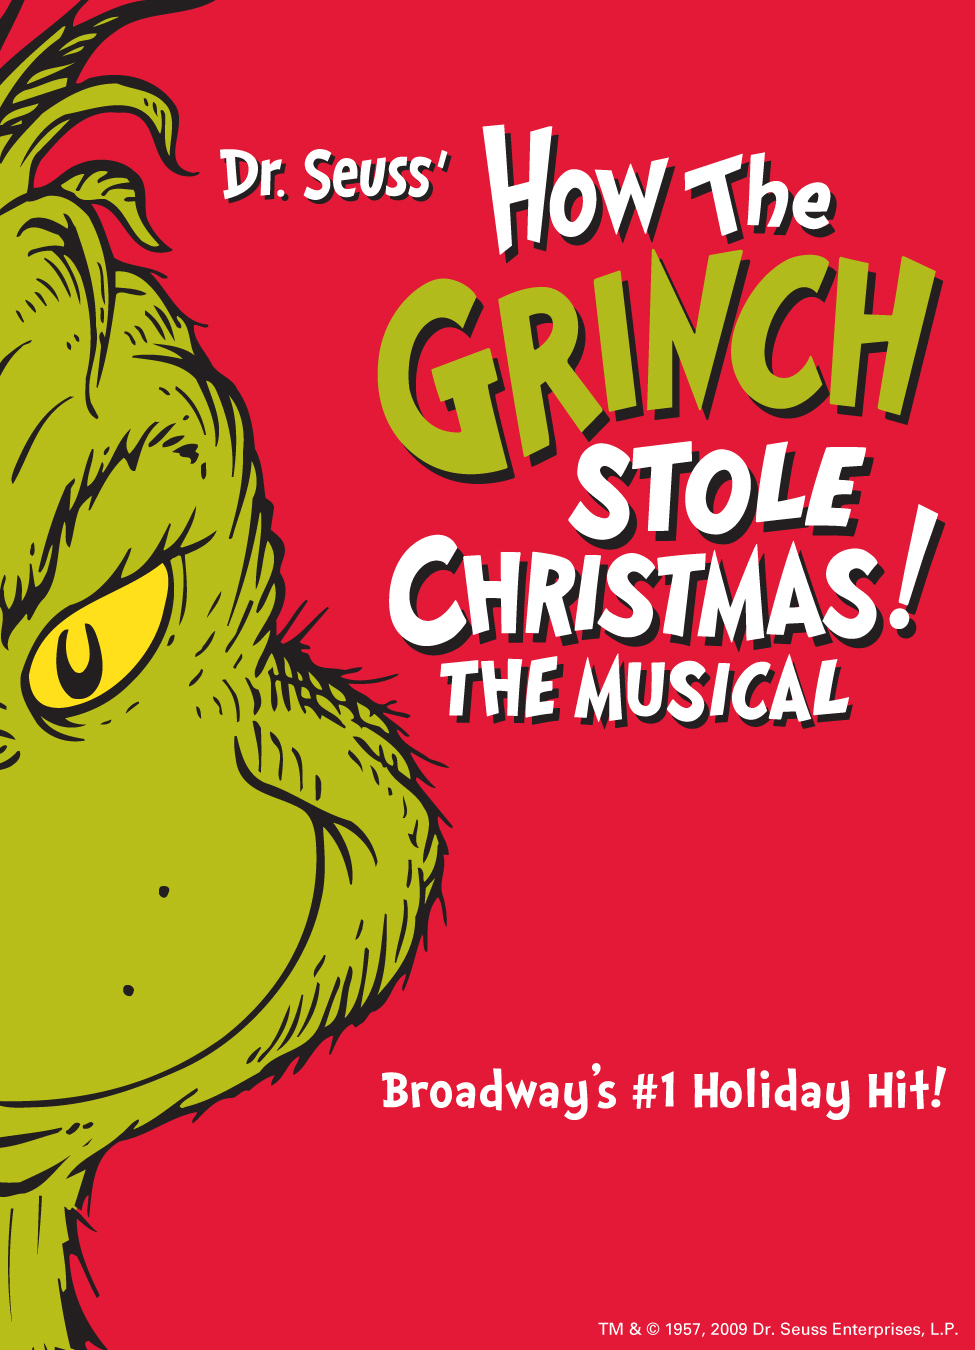 image dr seuss how the grinch stole christmas the musical at the